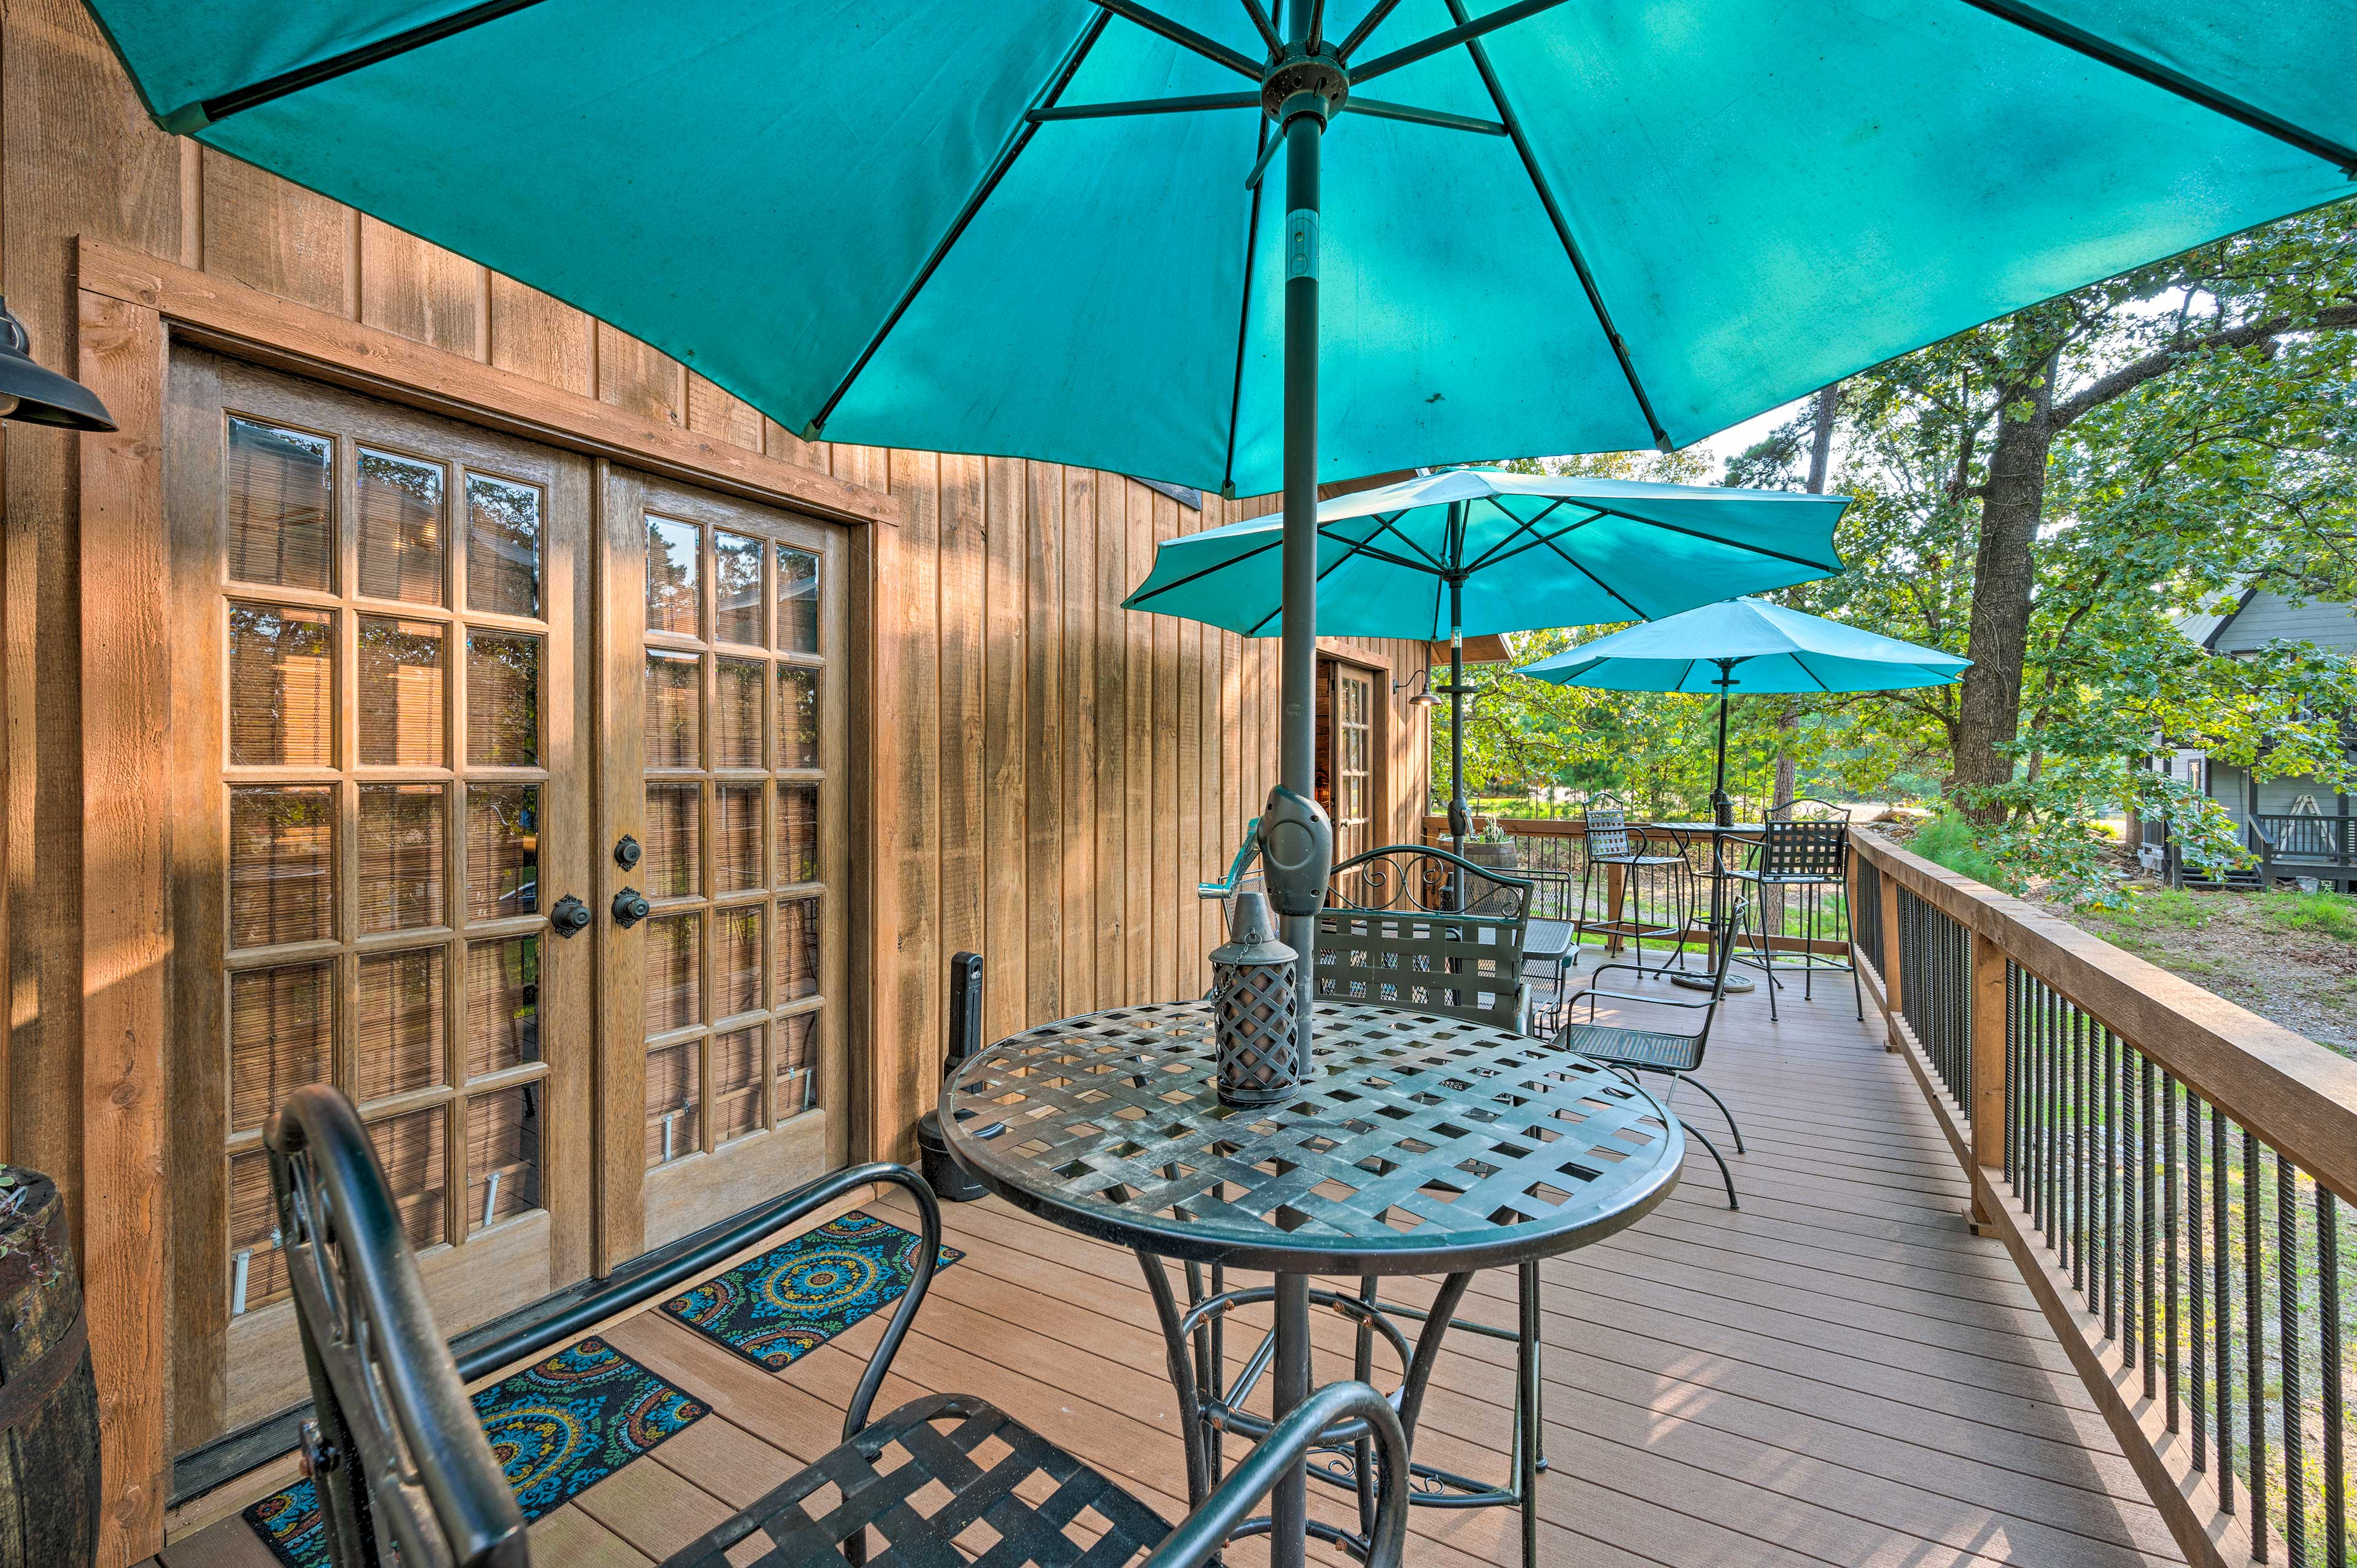 The deck has plenty of places to dine outside.